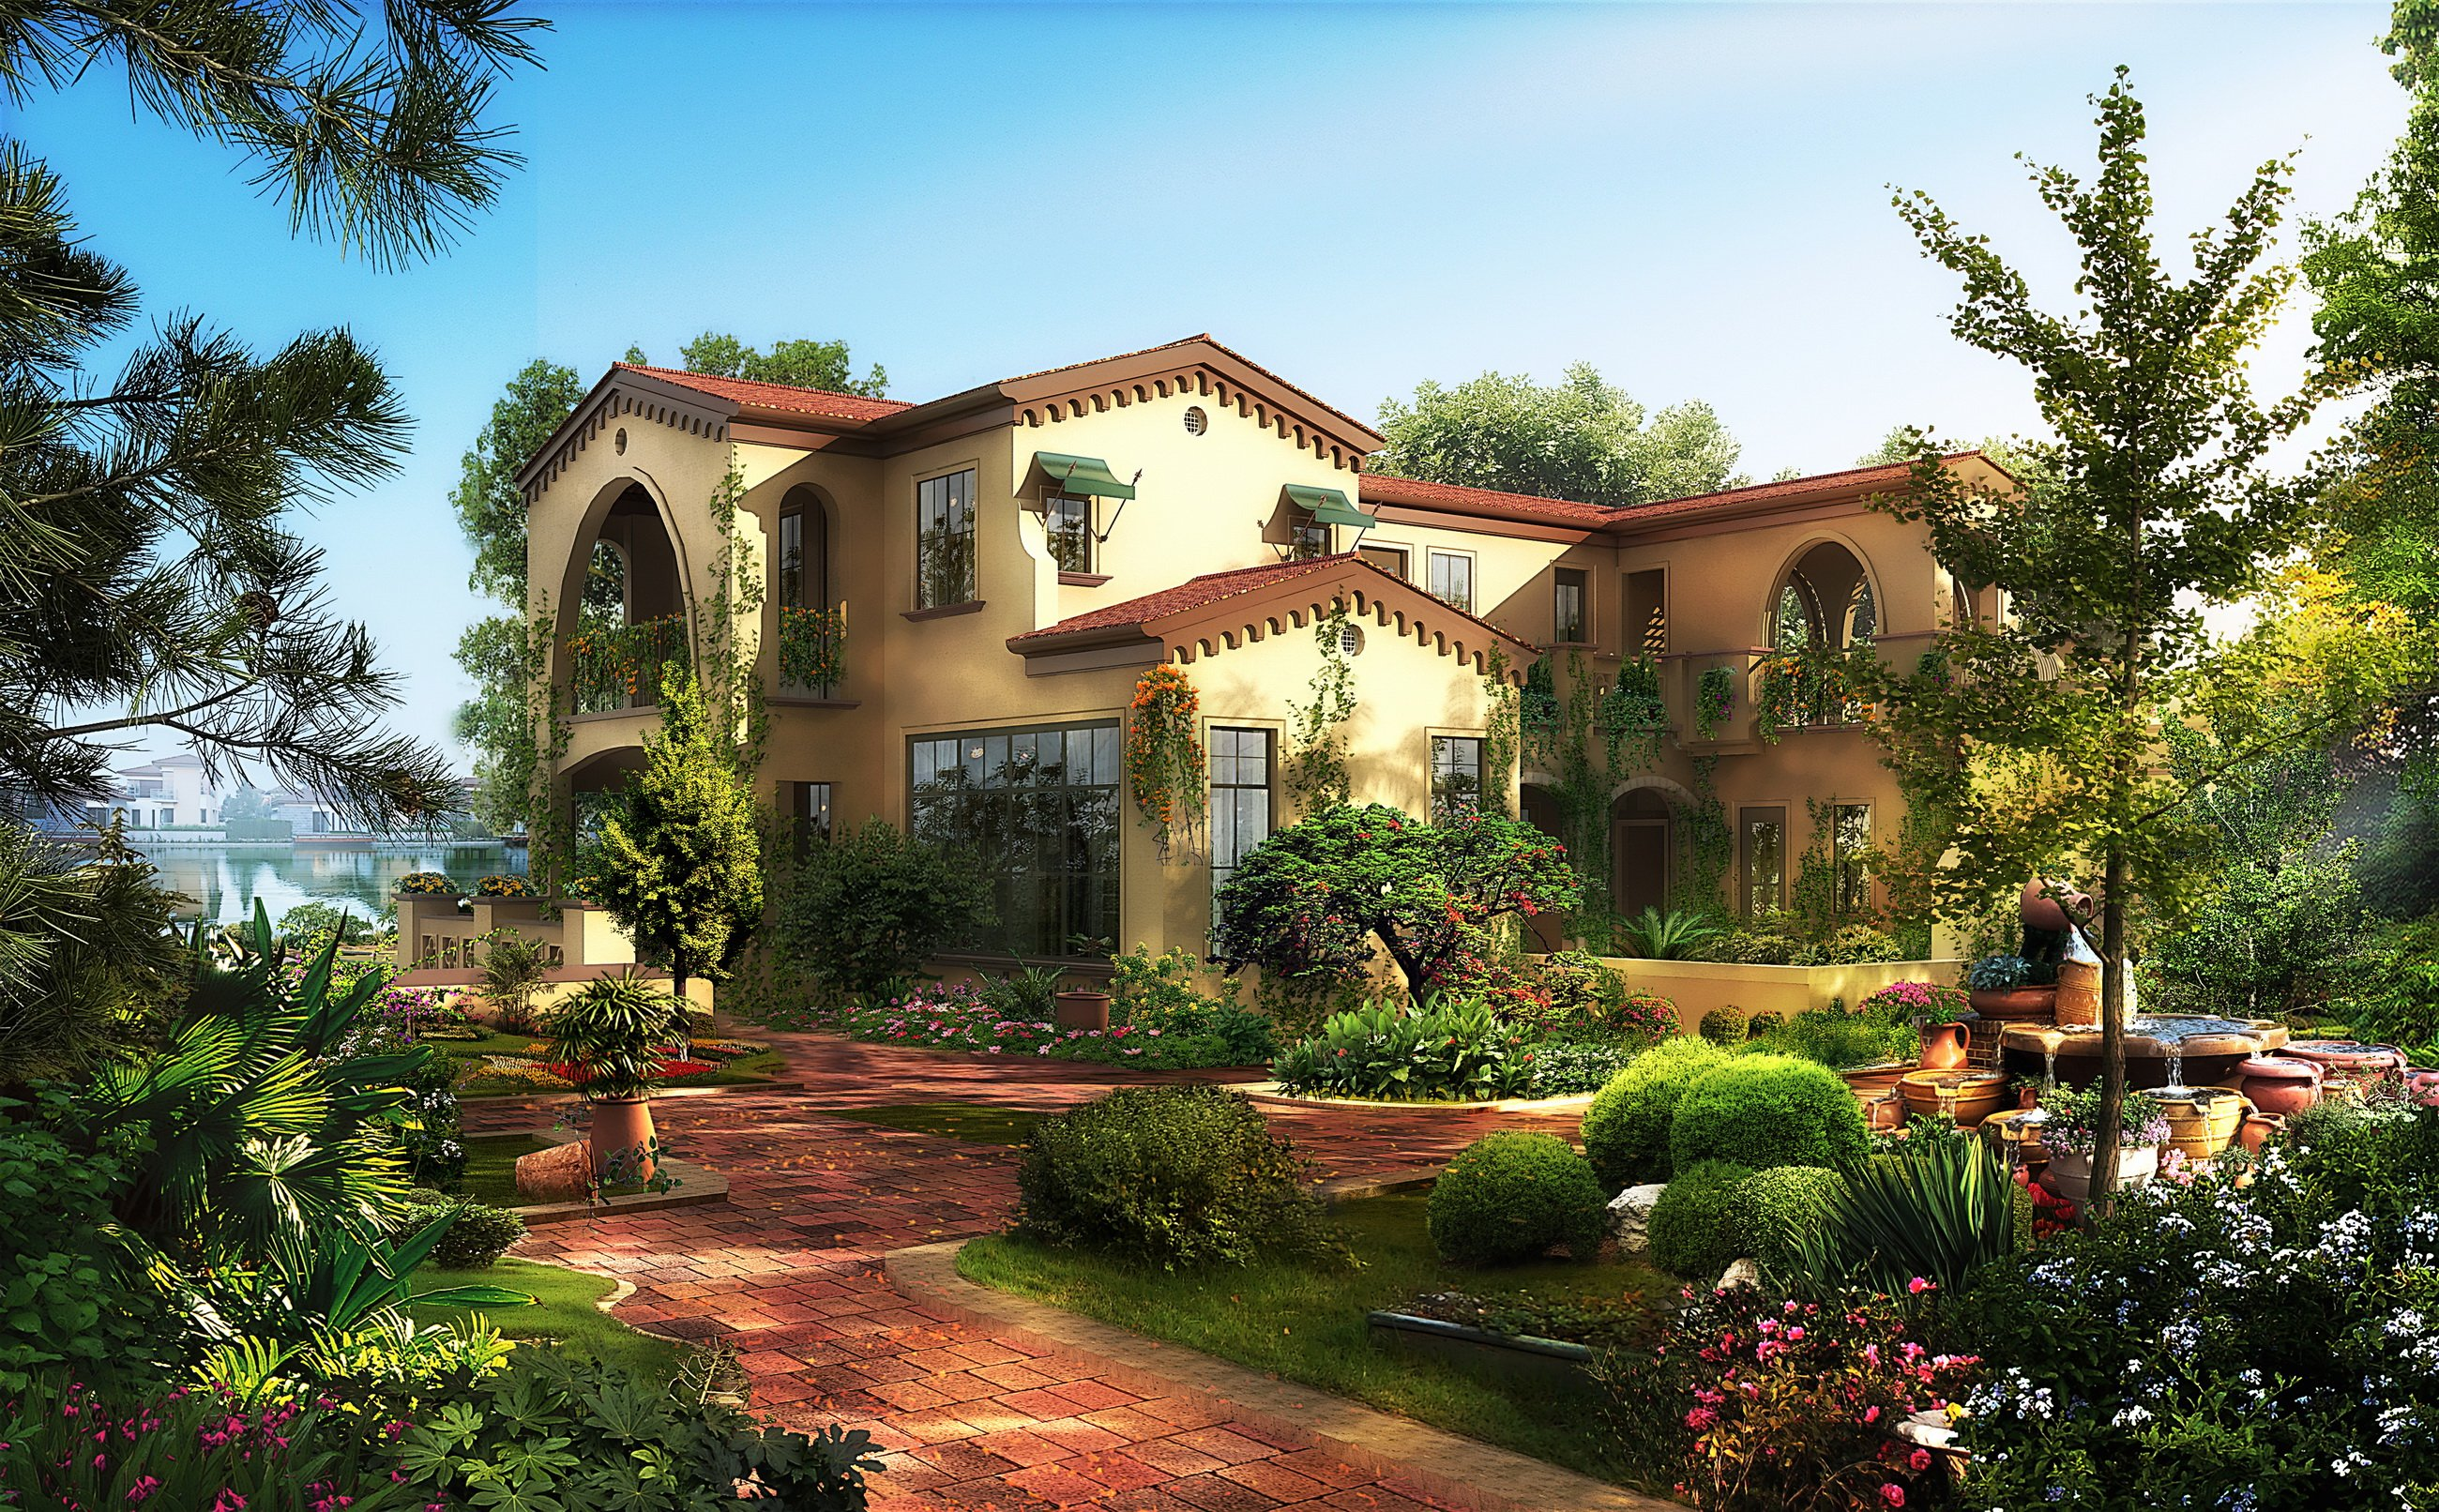 Houses gardens mansion shrubs cities 3d graphics wallpaper for Beautiful home images hd